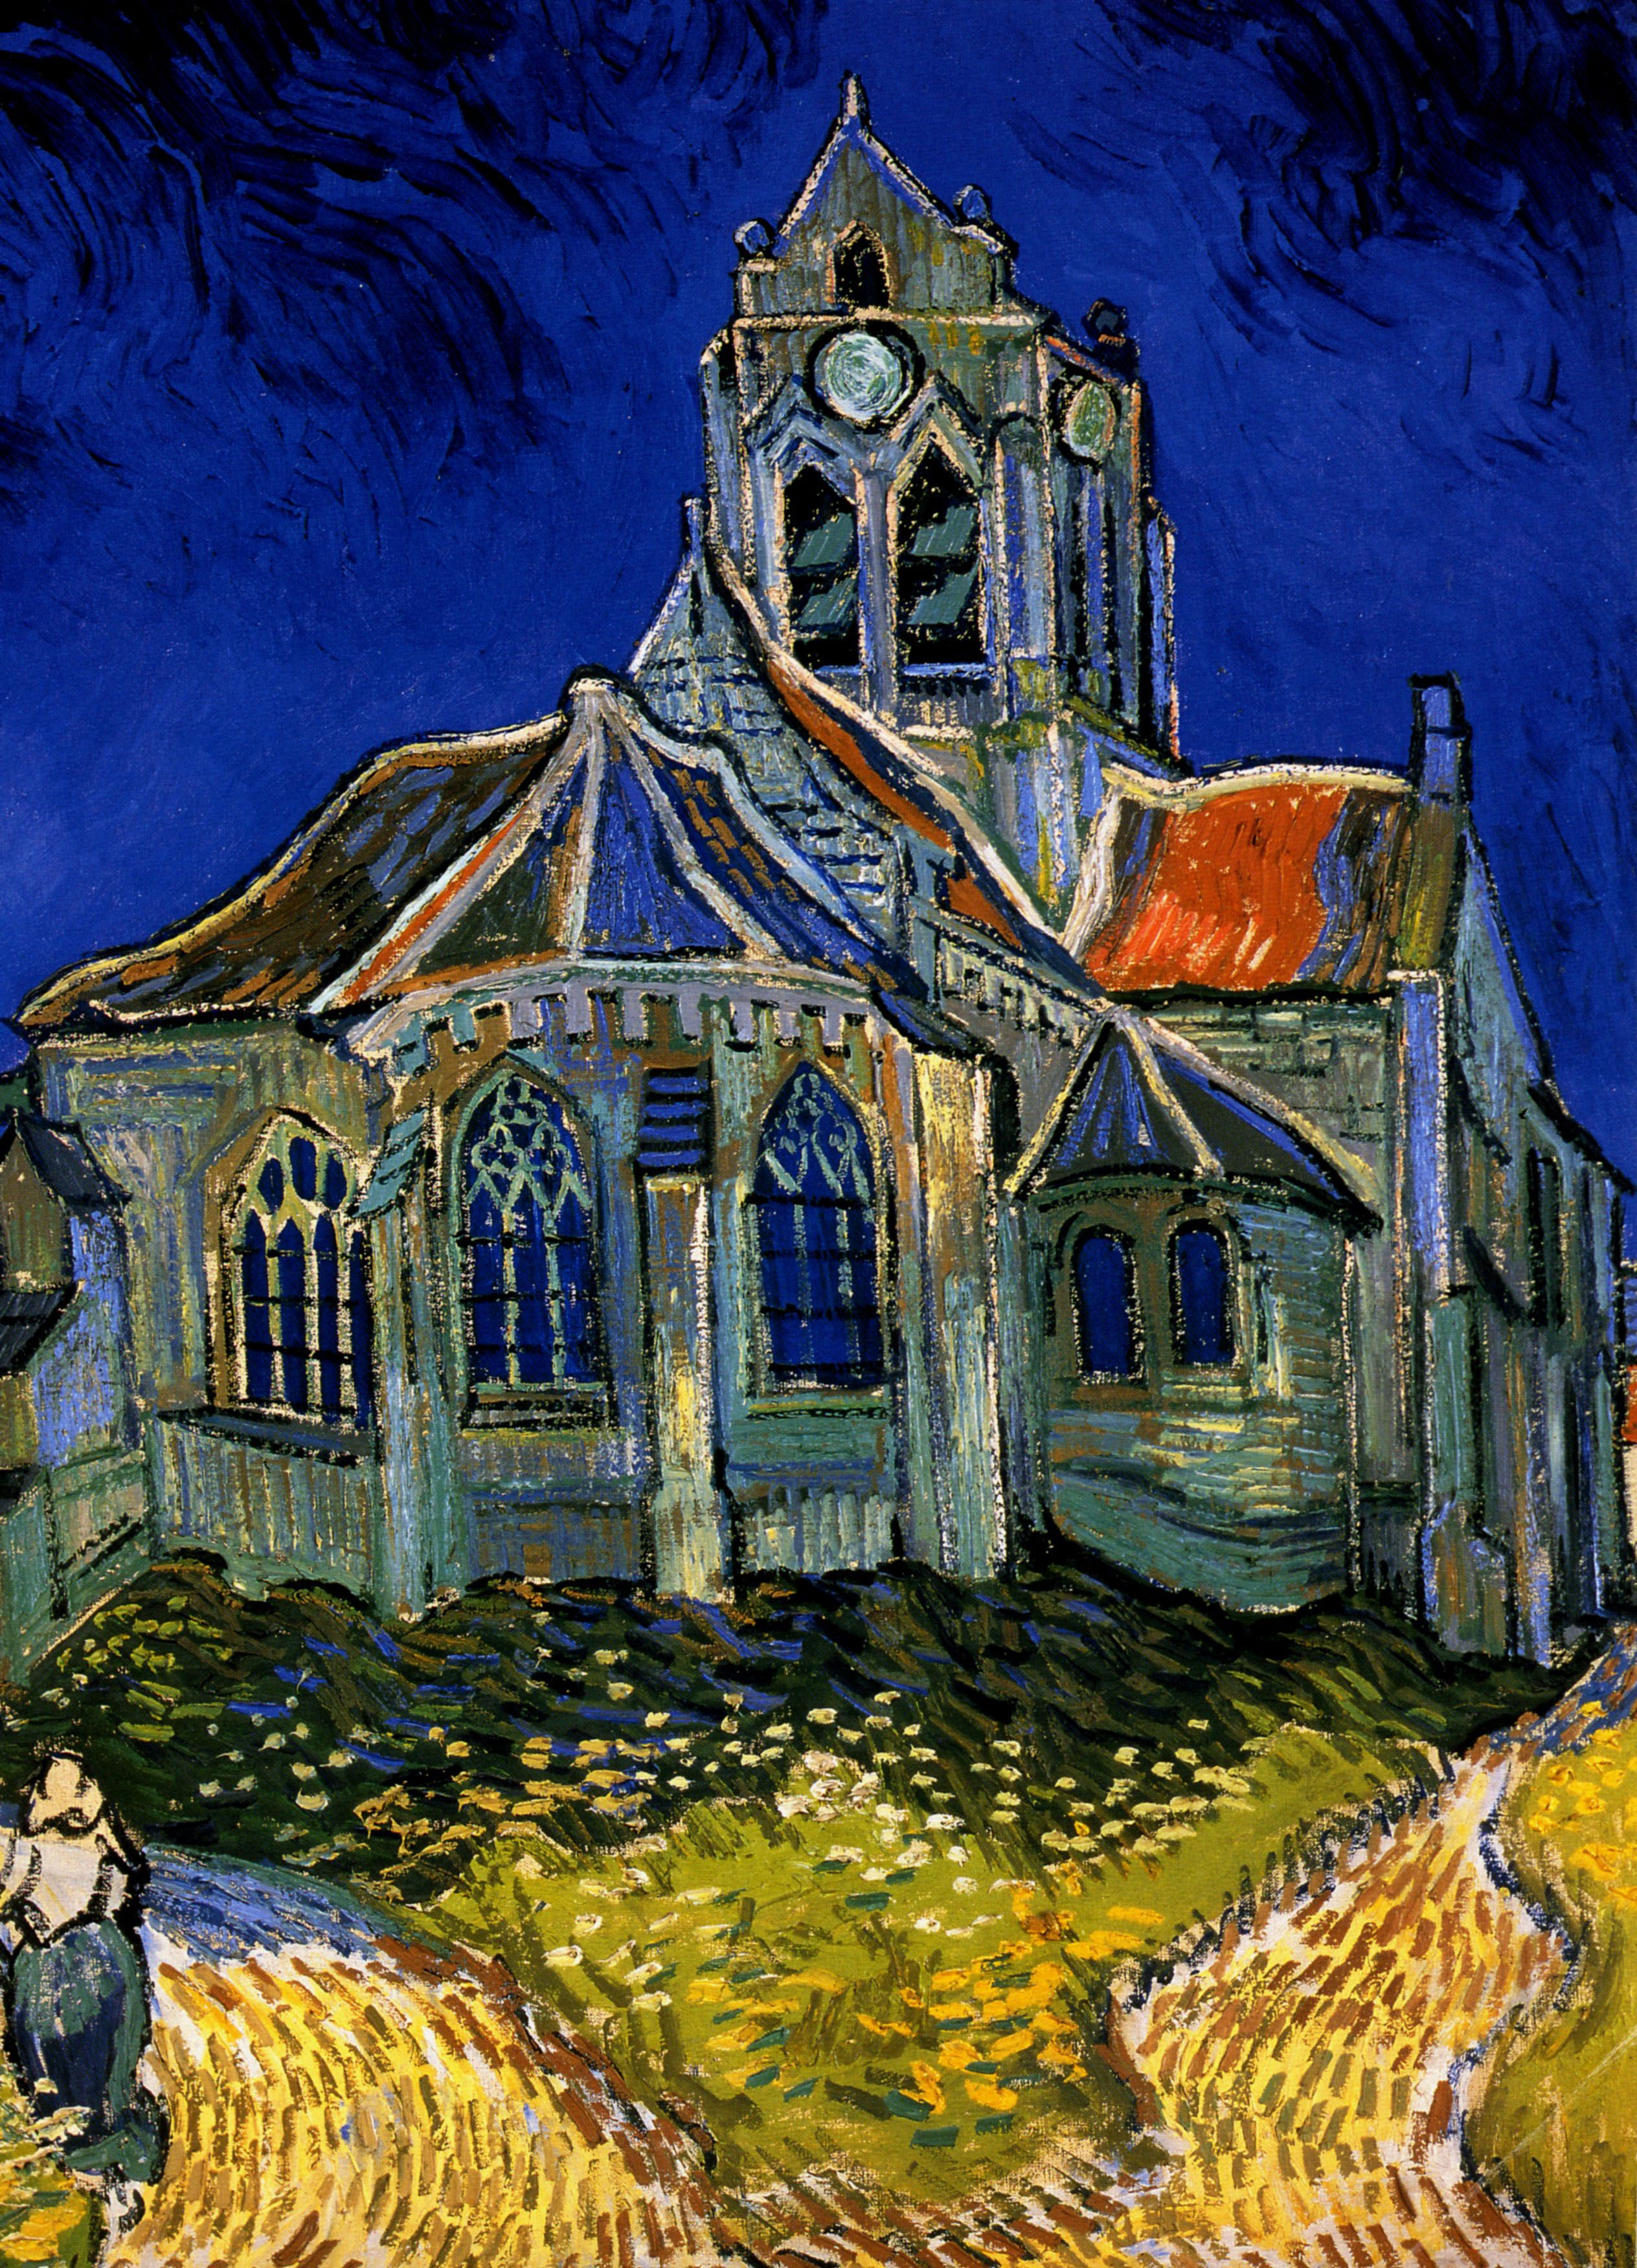 exploring vincent van goghs painting Vincent van gogh was born the second of six children into a religious dutch reformed church family in the south of the netherlands his father, theodorus van gogh, was a clergyman and his mother, anna cornelia carbentus, was the daughter of a bookseller.